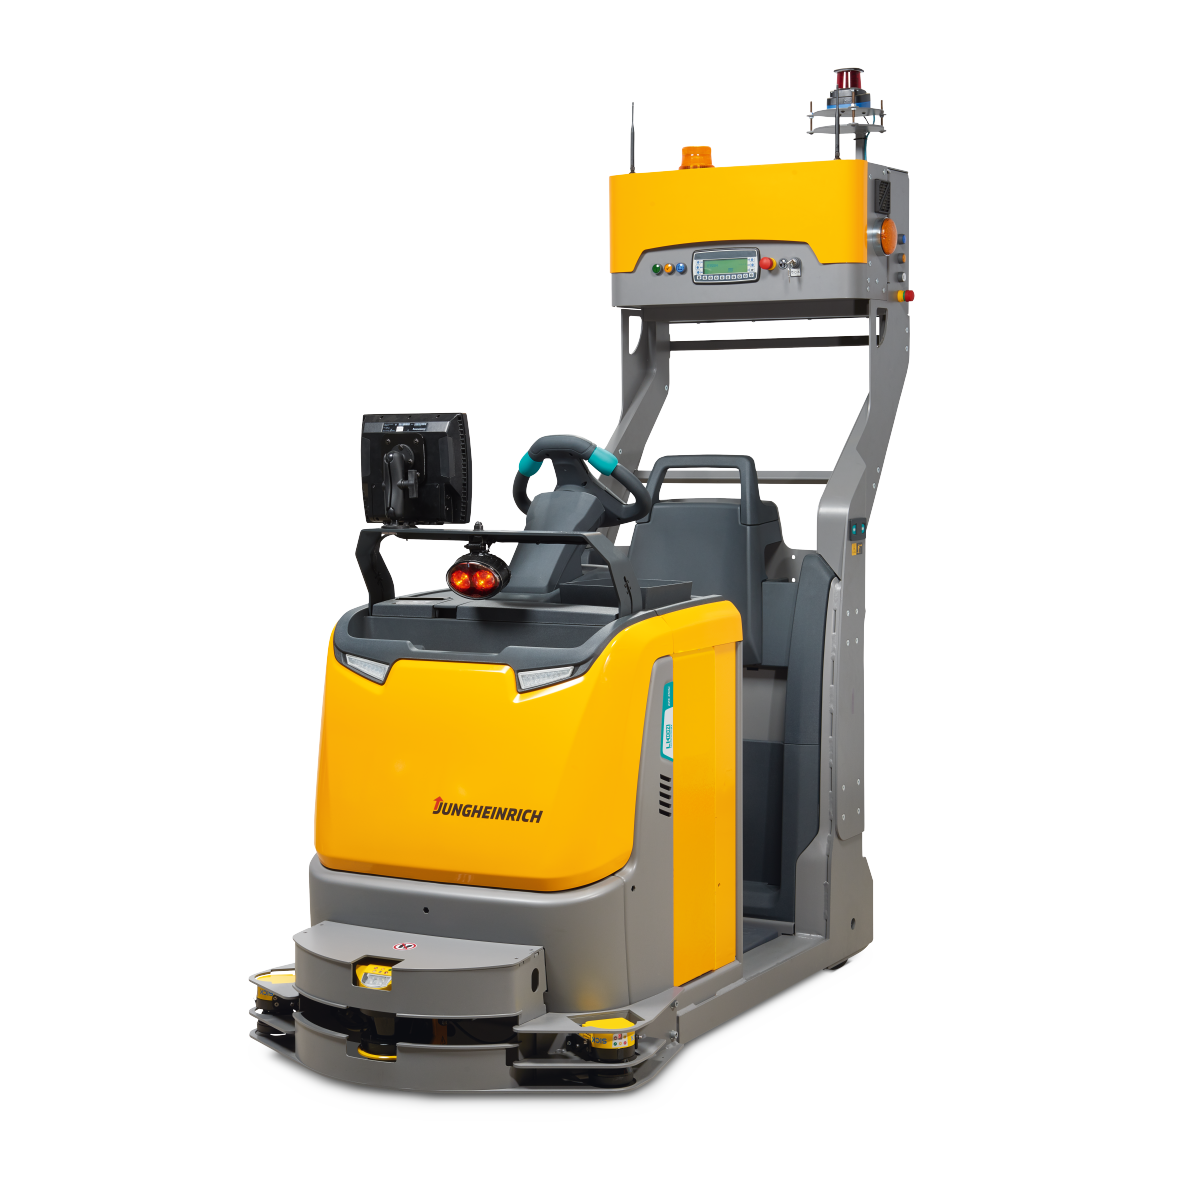 Jungheinrich EZS350a_Automated tow tractor